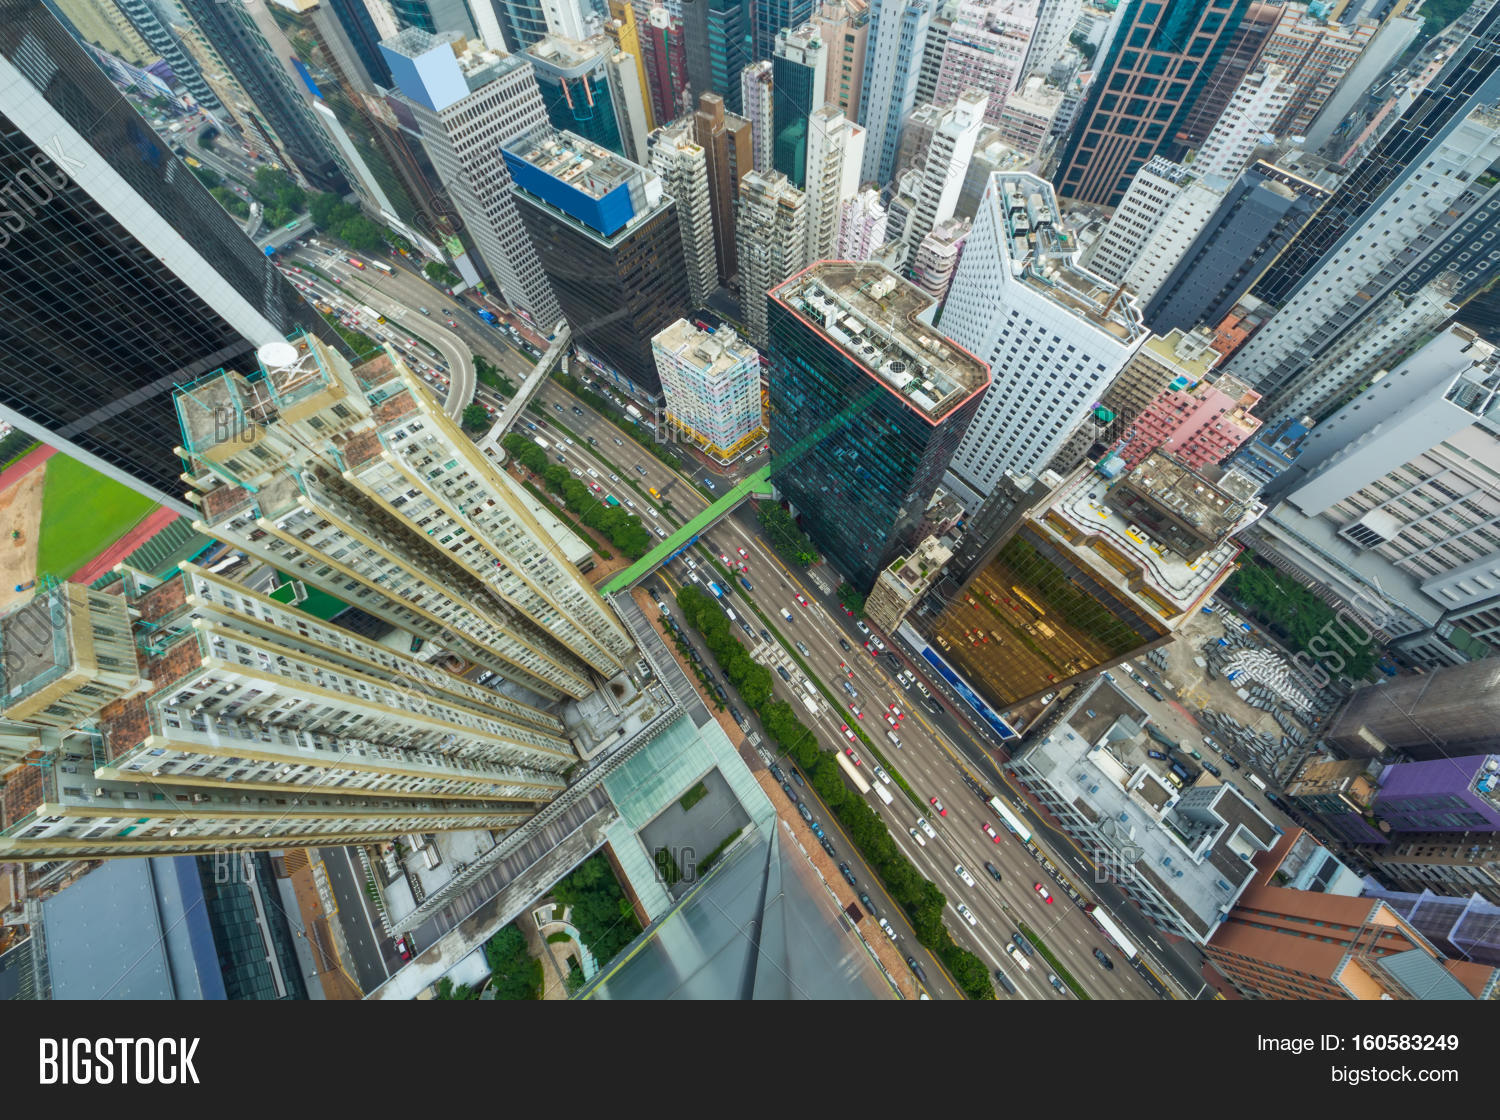 Rooftopping: Photographs taken by daredevils from the top of ...